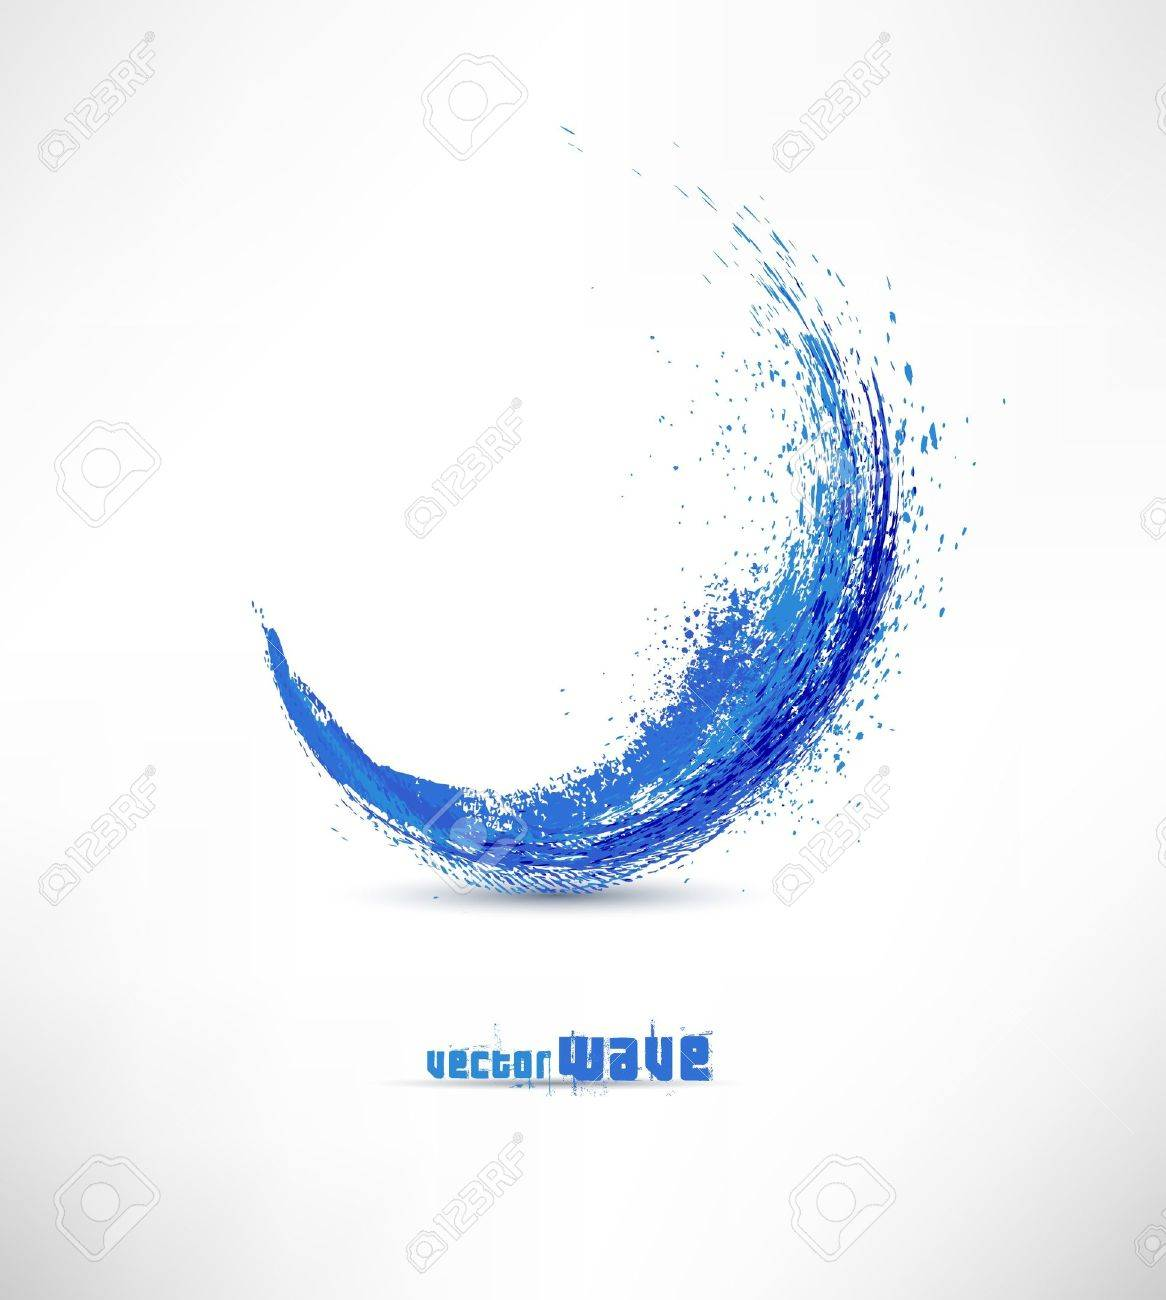 Vector illustration of abstract blue wave Stock Vector - 11449637